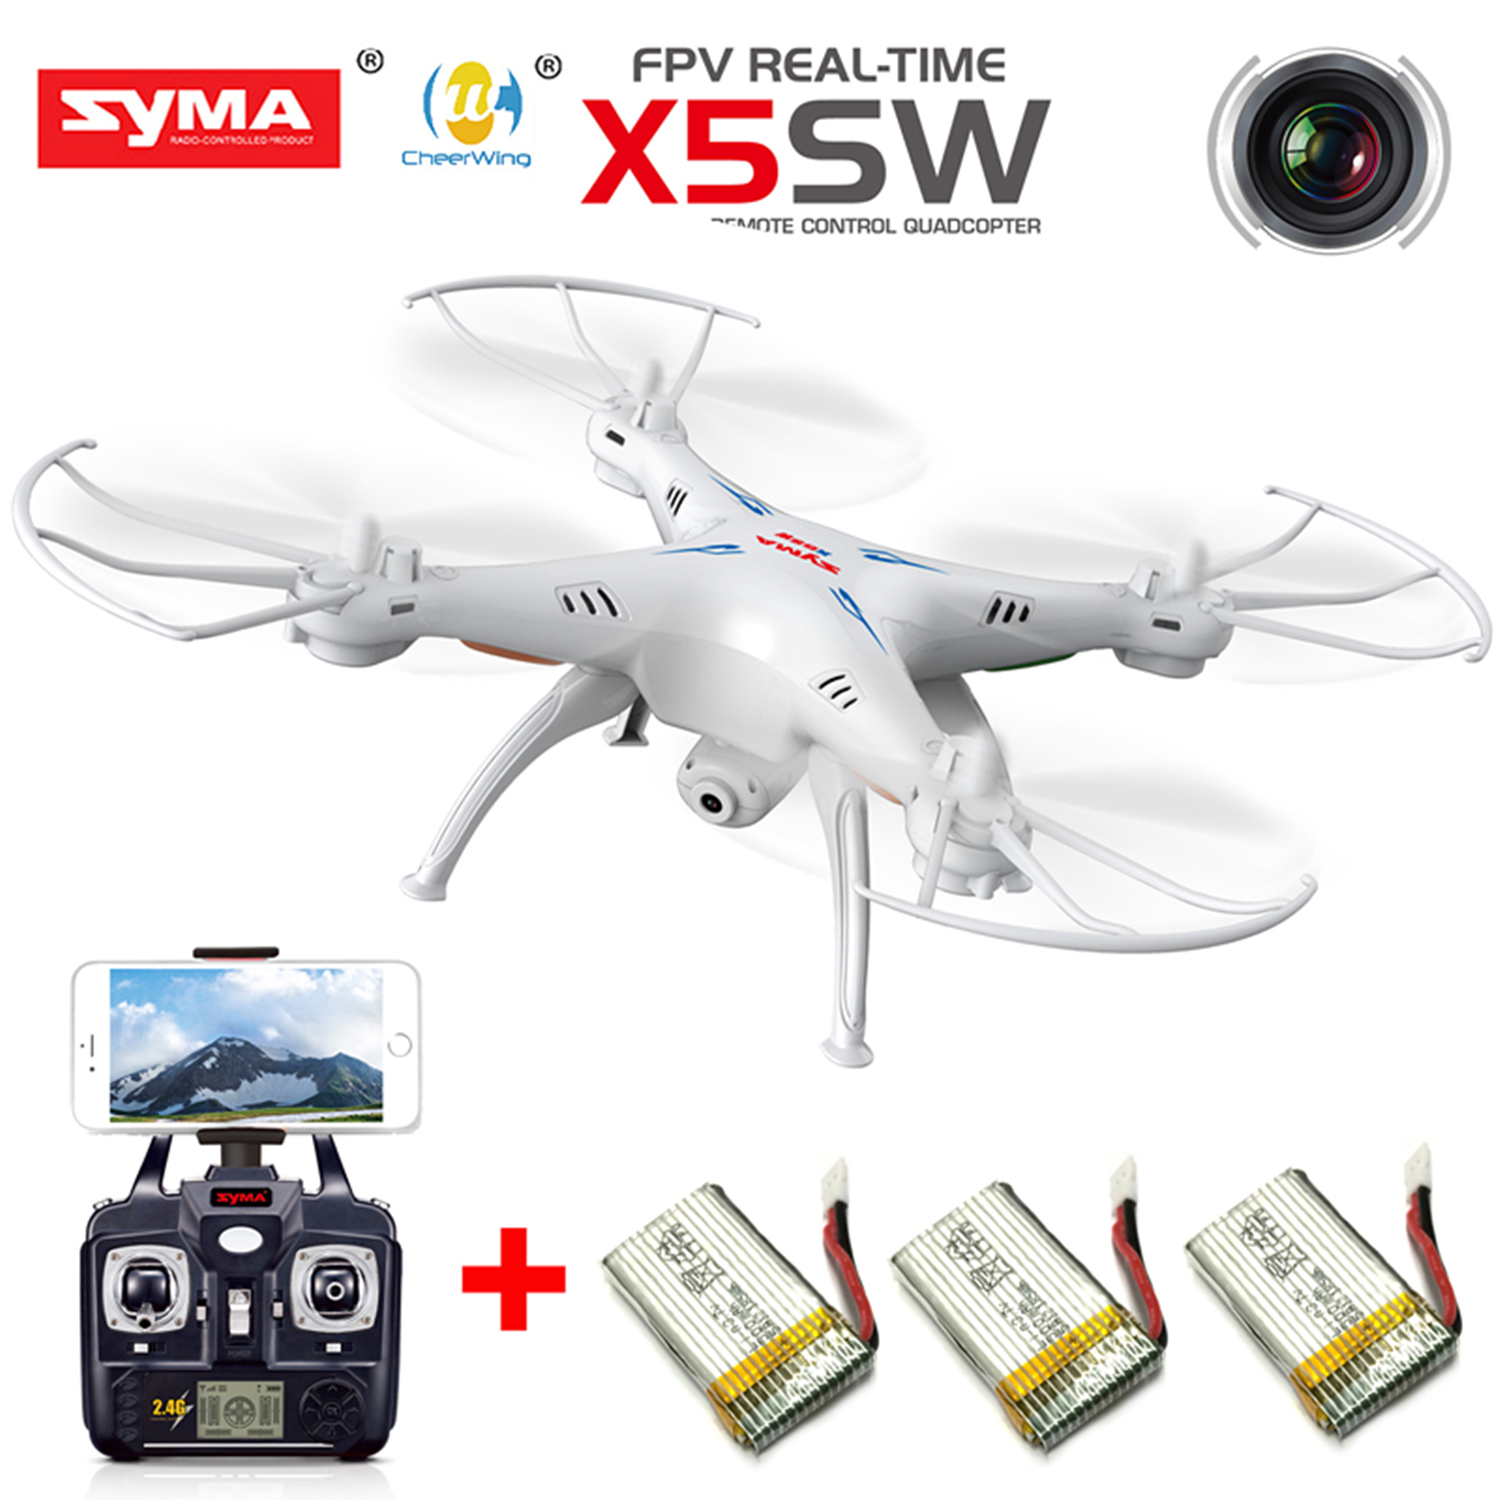 Cheerwing Syma X5SW UAV FPV 2.4Ghz 4CH 6-Axis Gyro RC Qucopter Drone UFO Headless Mode... by Syma